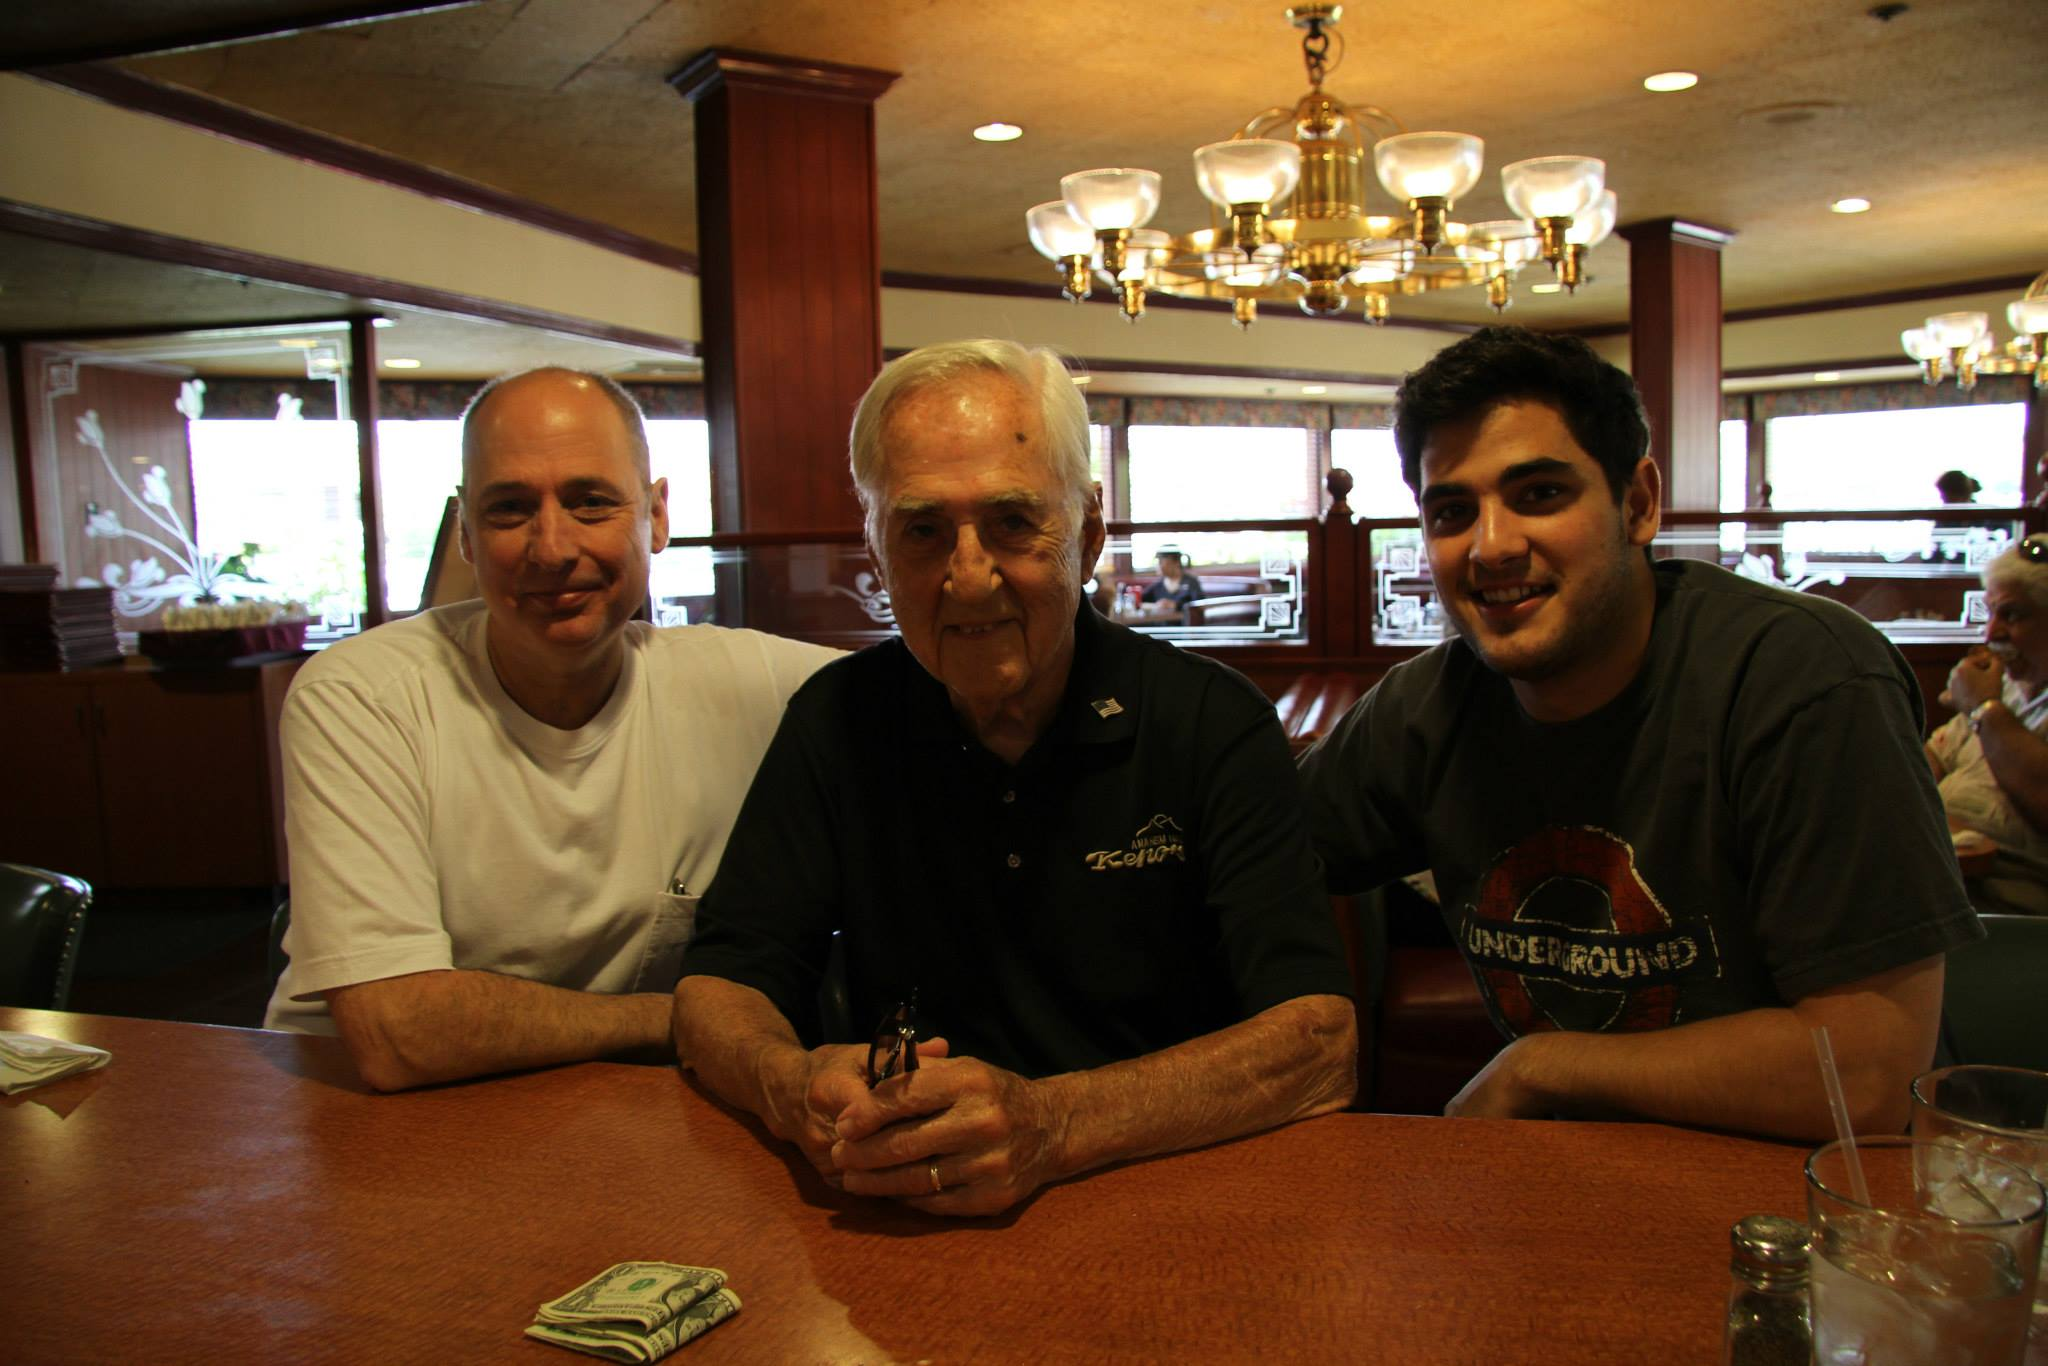 Three generations of Cooper men (Steve, Geno, Robert) pictured sitting on the Kenos counter.